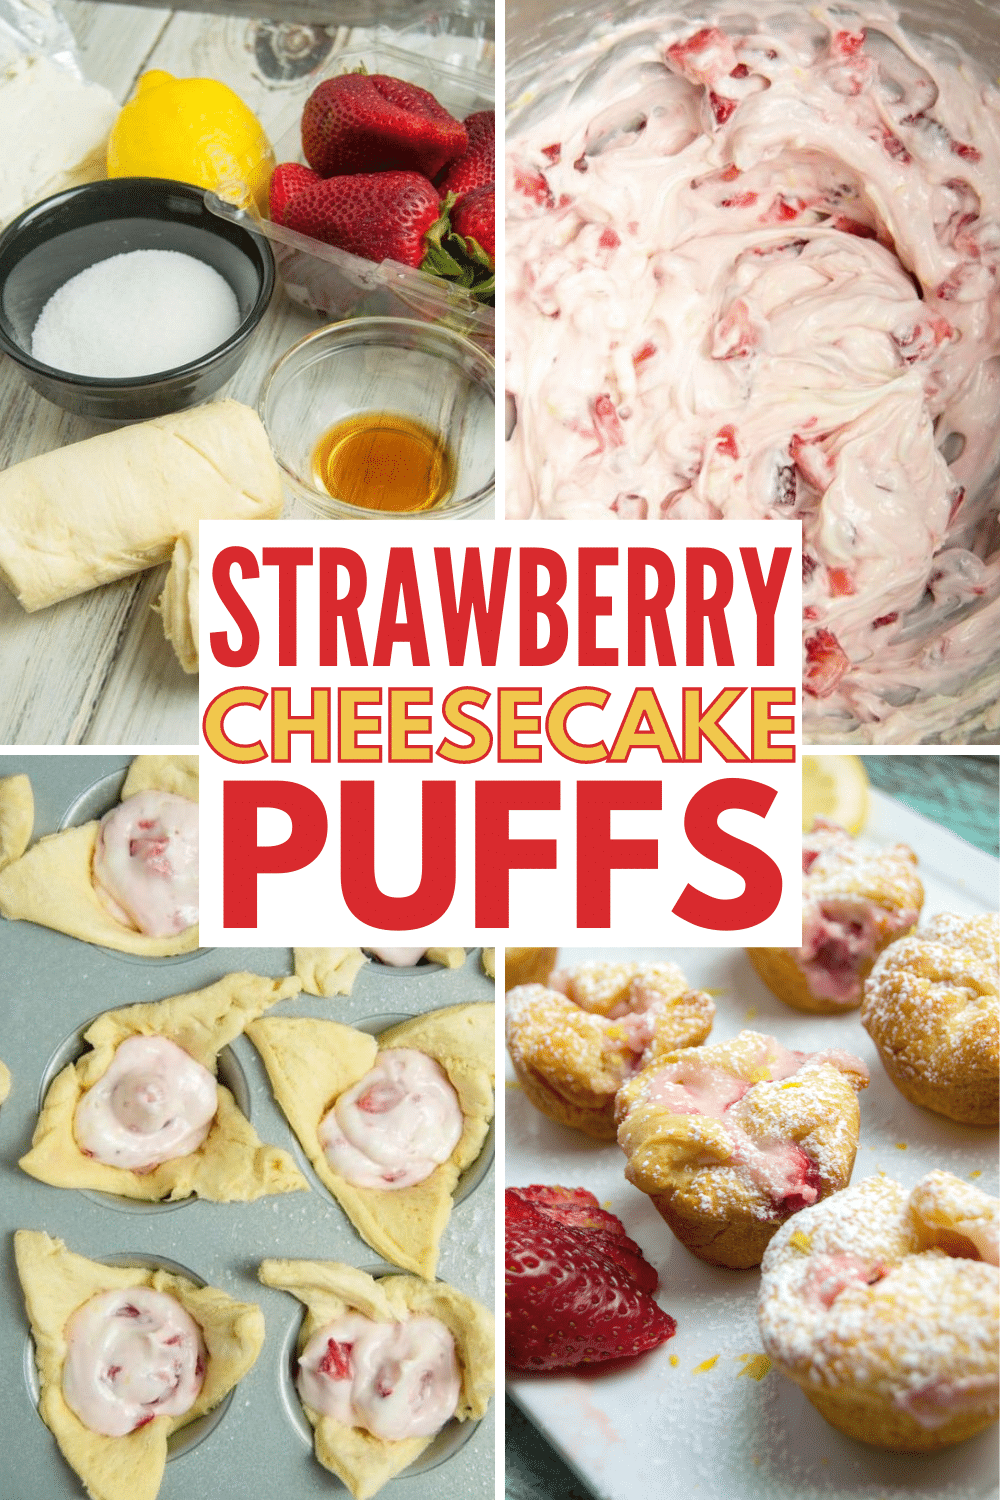 Strawberry Cheesecake Puffs are simple to make with croissant dough and fresh strawberries. These delicious puffs are a delightful dessert. #cheesecake #strawberries #dessert via @wondermomwannab